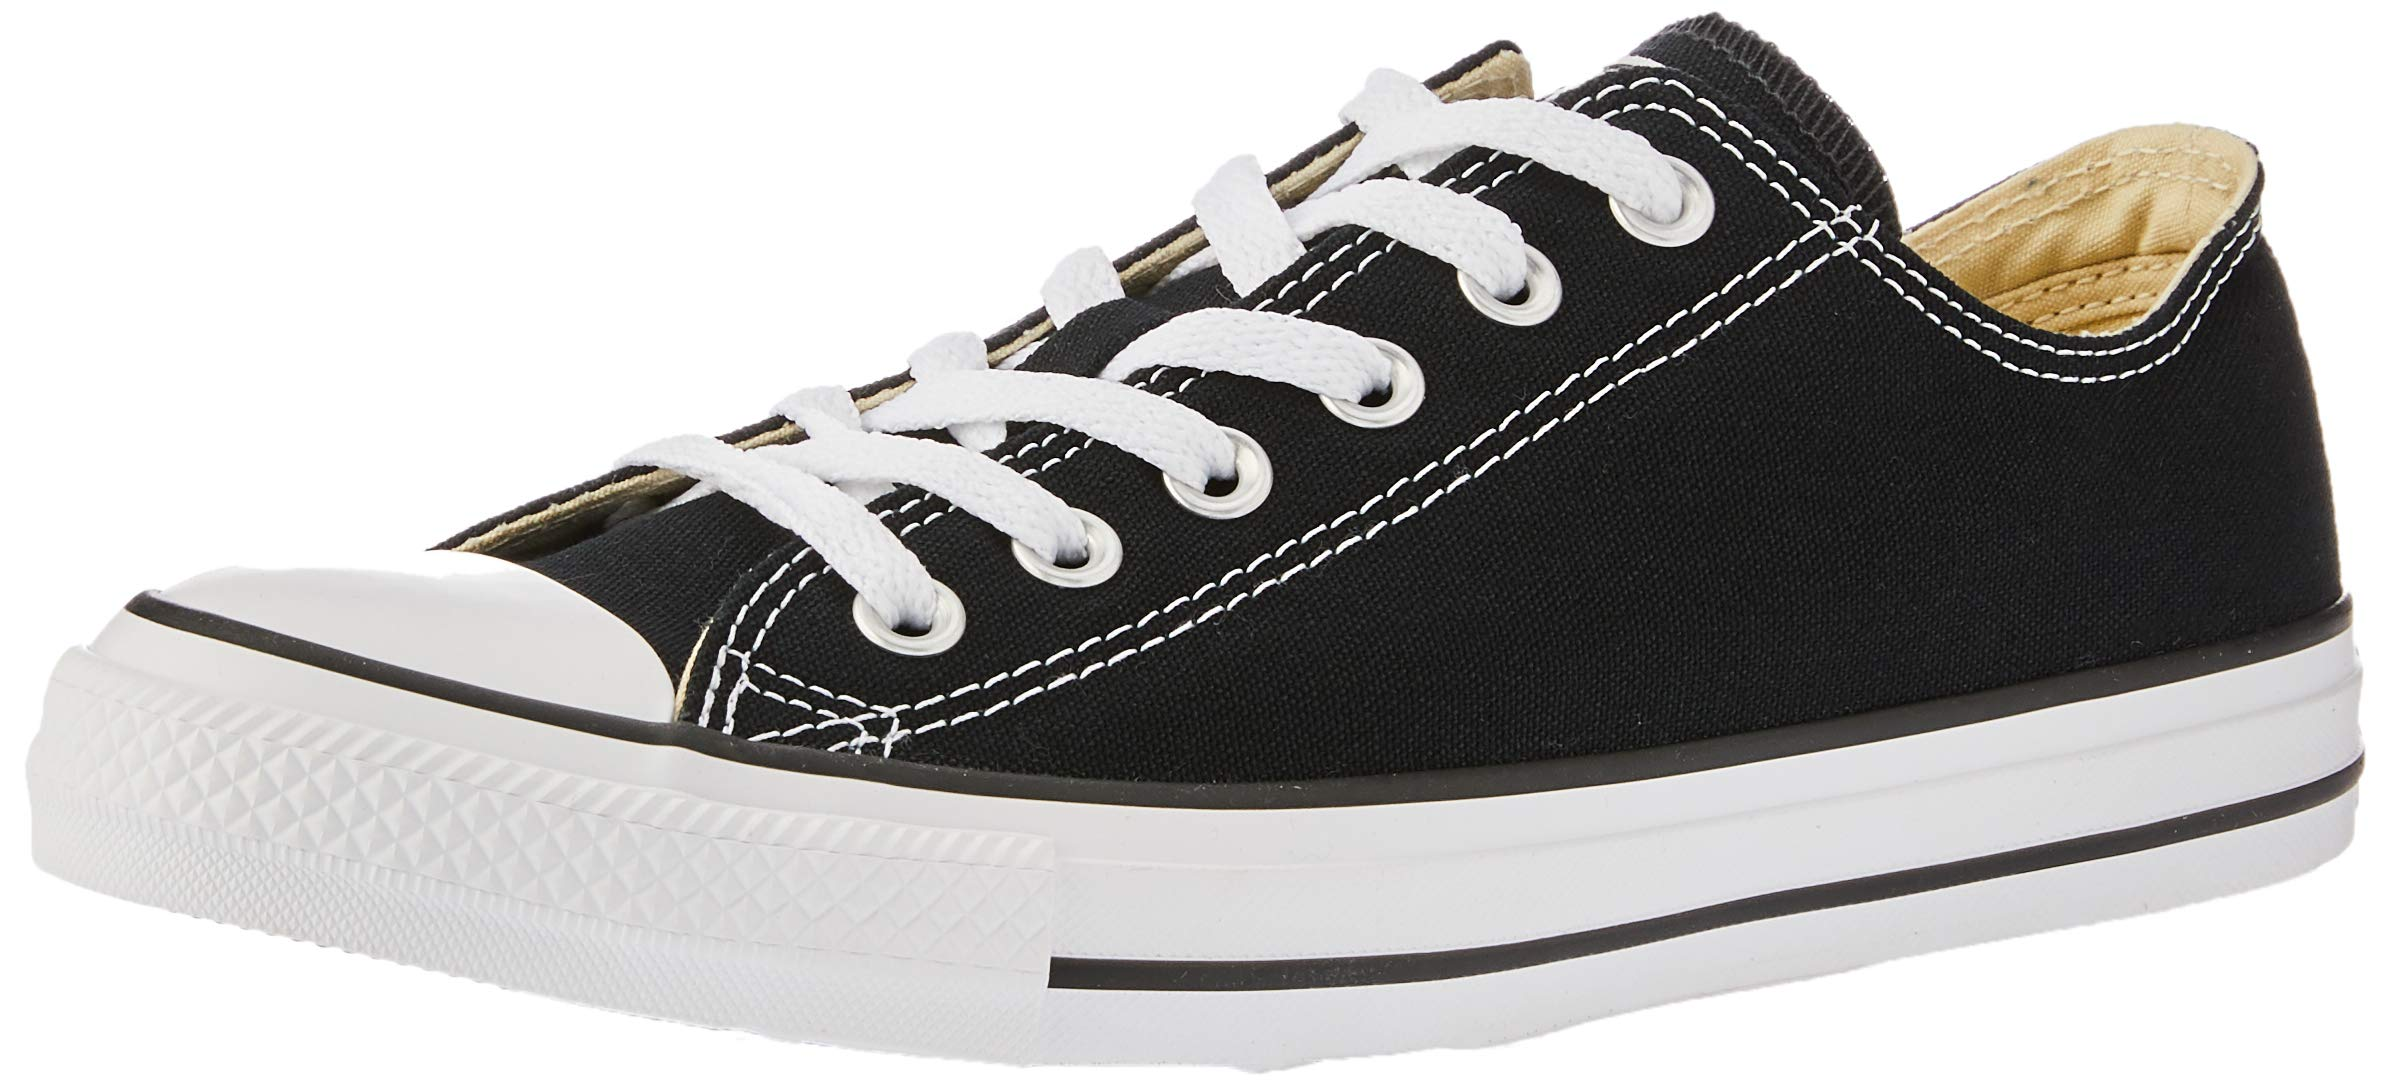 21ea9005fa2a21 Galleon - Converse Unisex Chuck Taylor All Star Low Shield